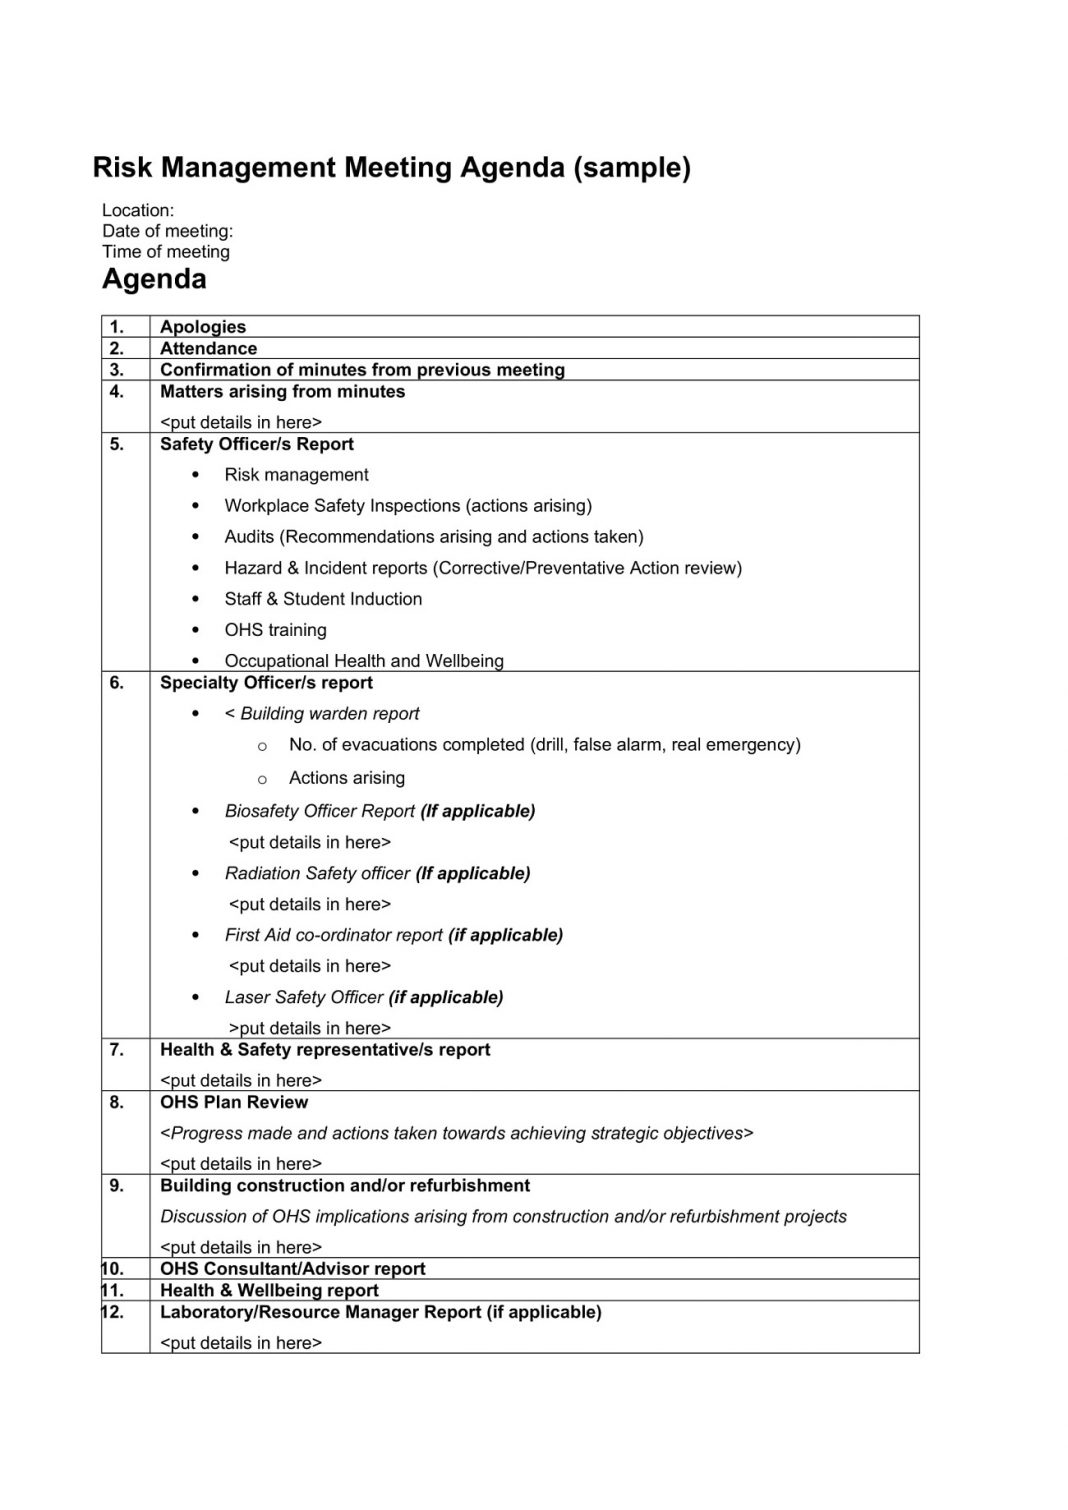 Risk Management Meeting Agenda Sample Template Word Monthly Topics Case  Example Large